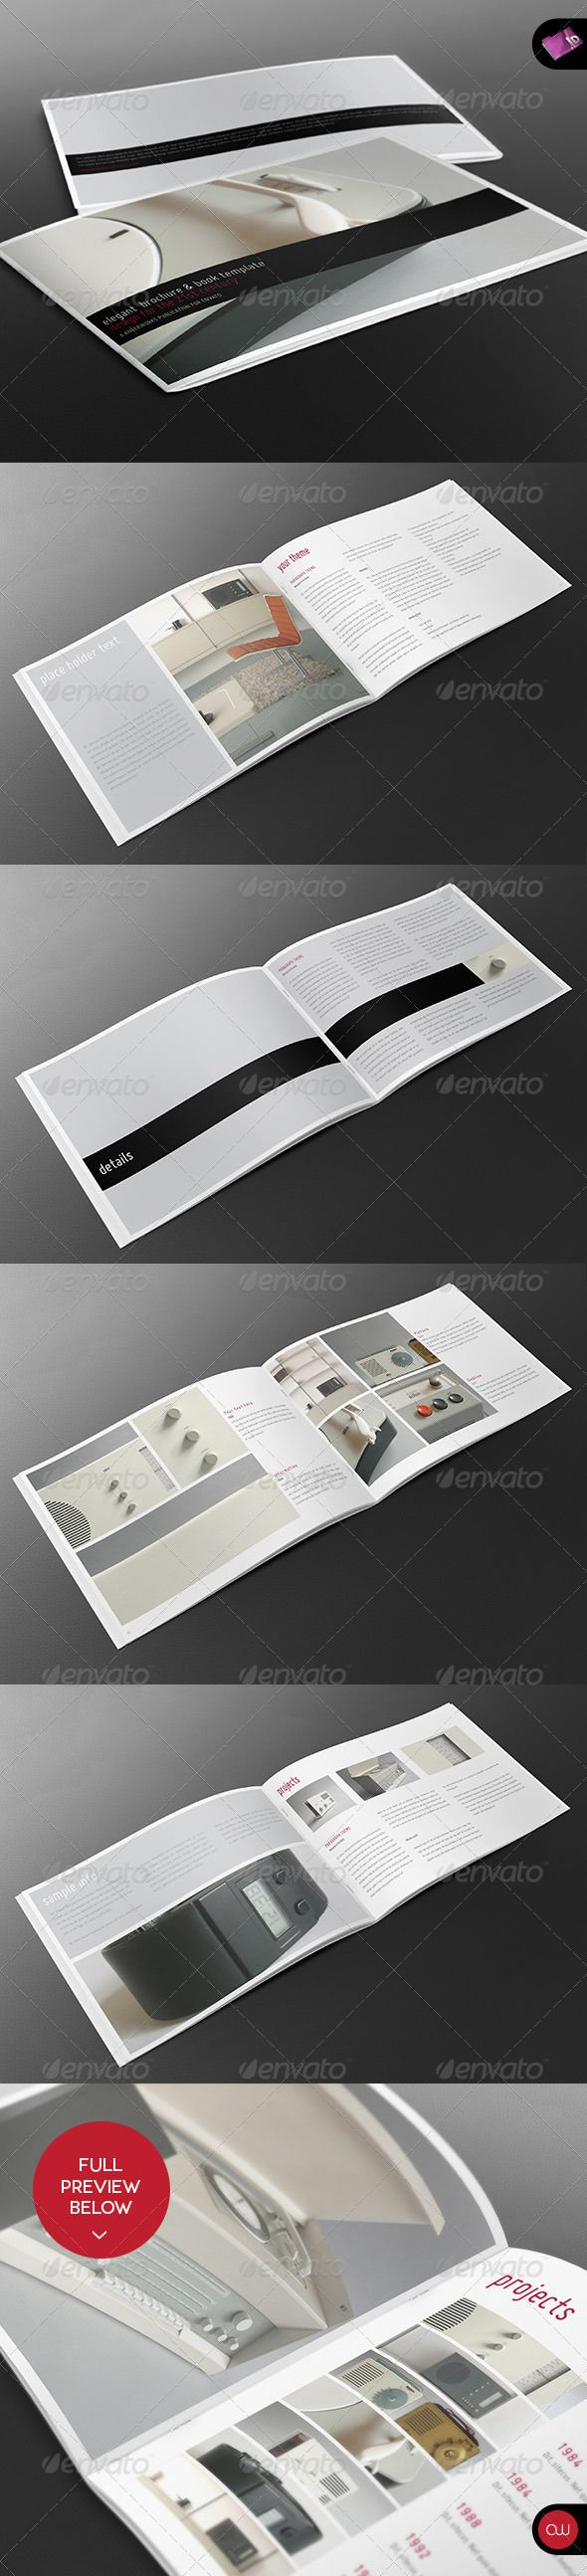 GraphicRiver Elegant A4 Landscape Book & Brochure Template 2625582